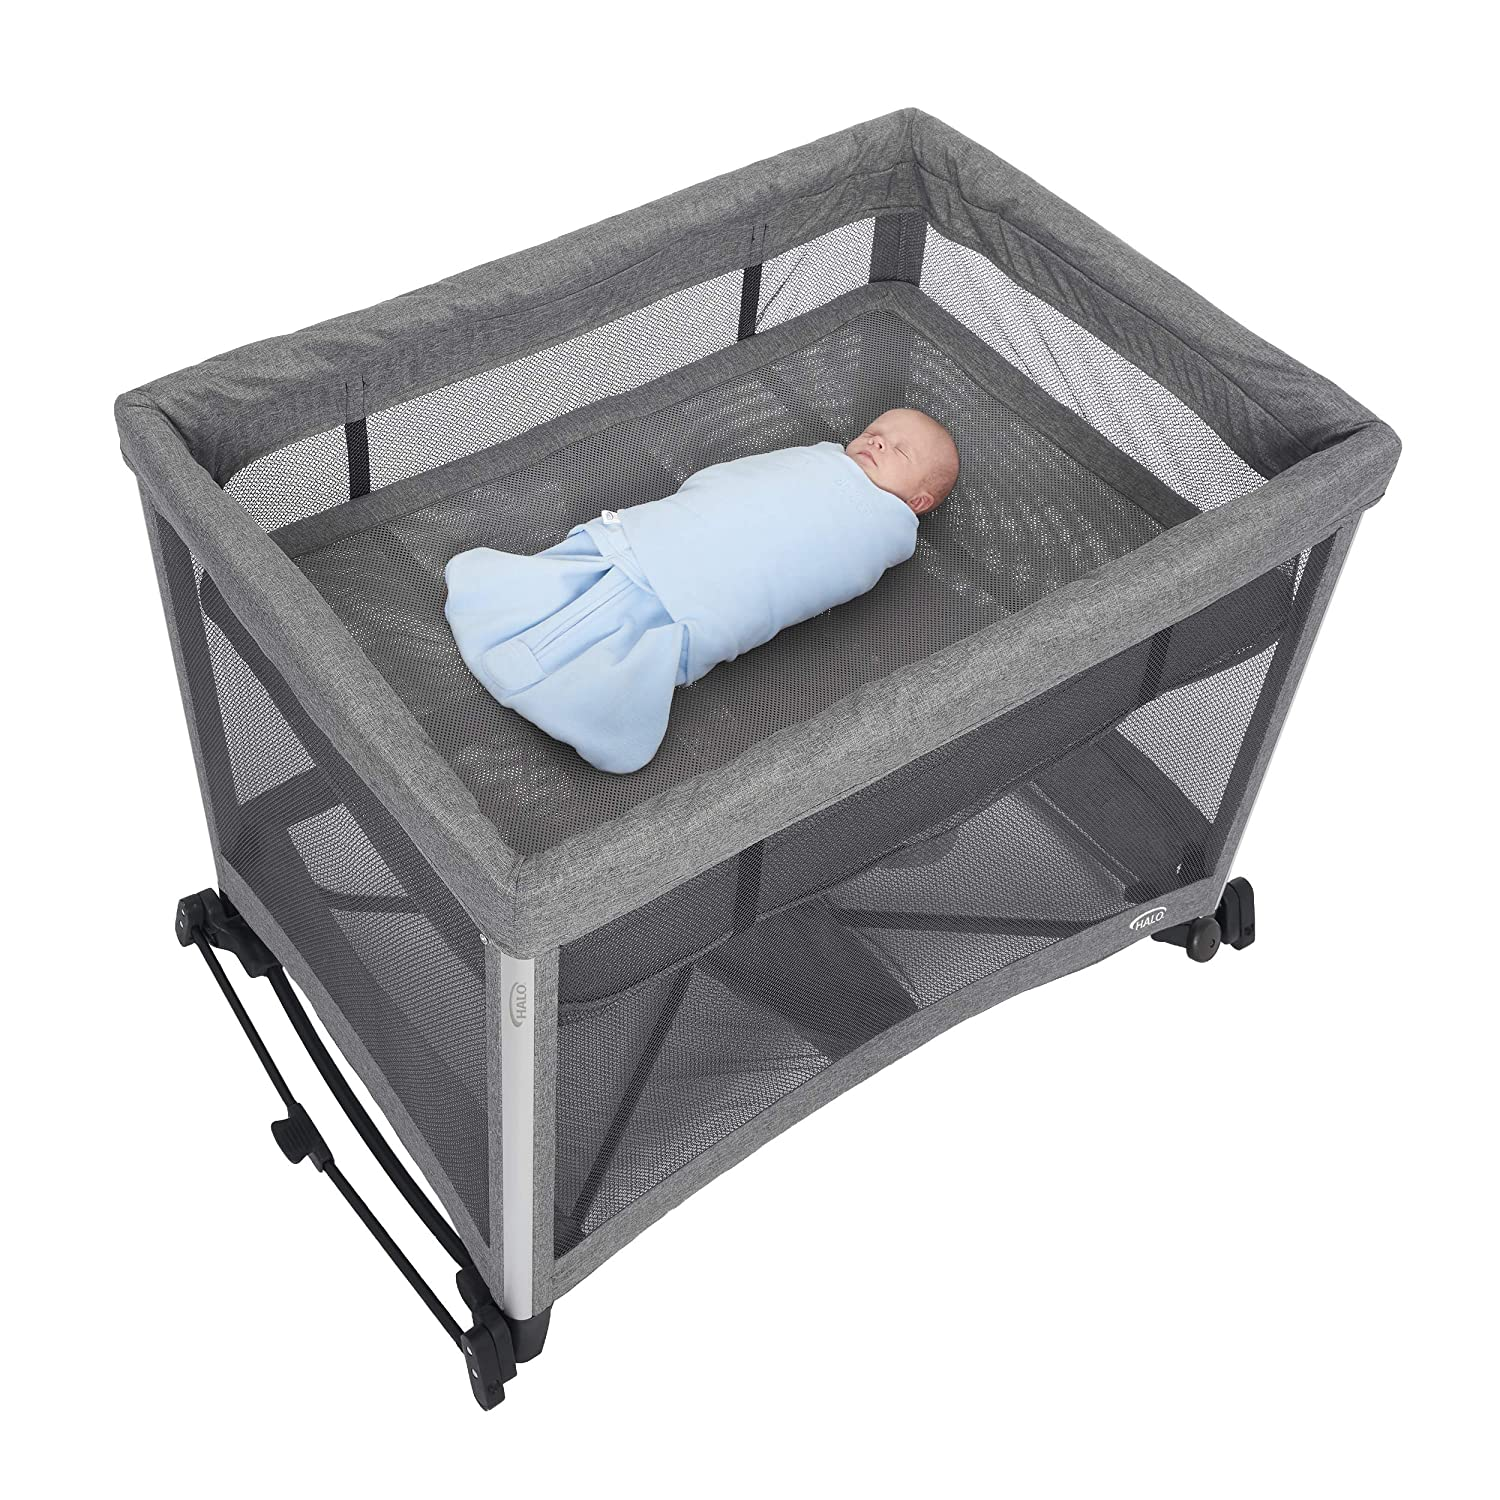 Amazon.com: HALO DreamNest Open air Sleep System: Baby